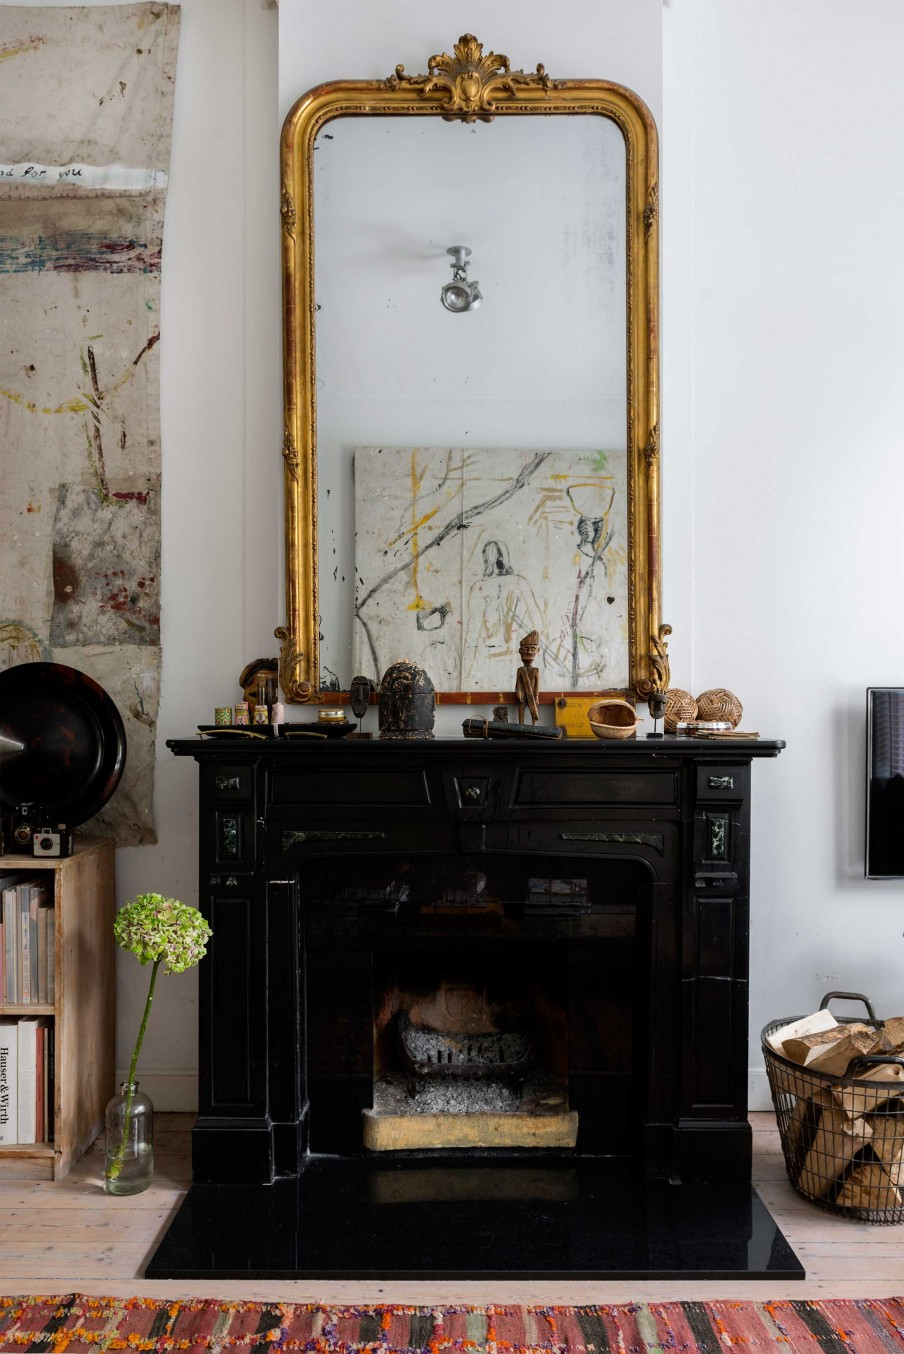 02-Every-space-in-the-house-has-a-black-vintage-fireplace-with-an-oversized-mirror